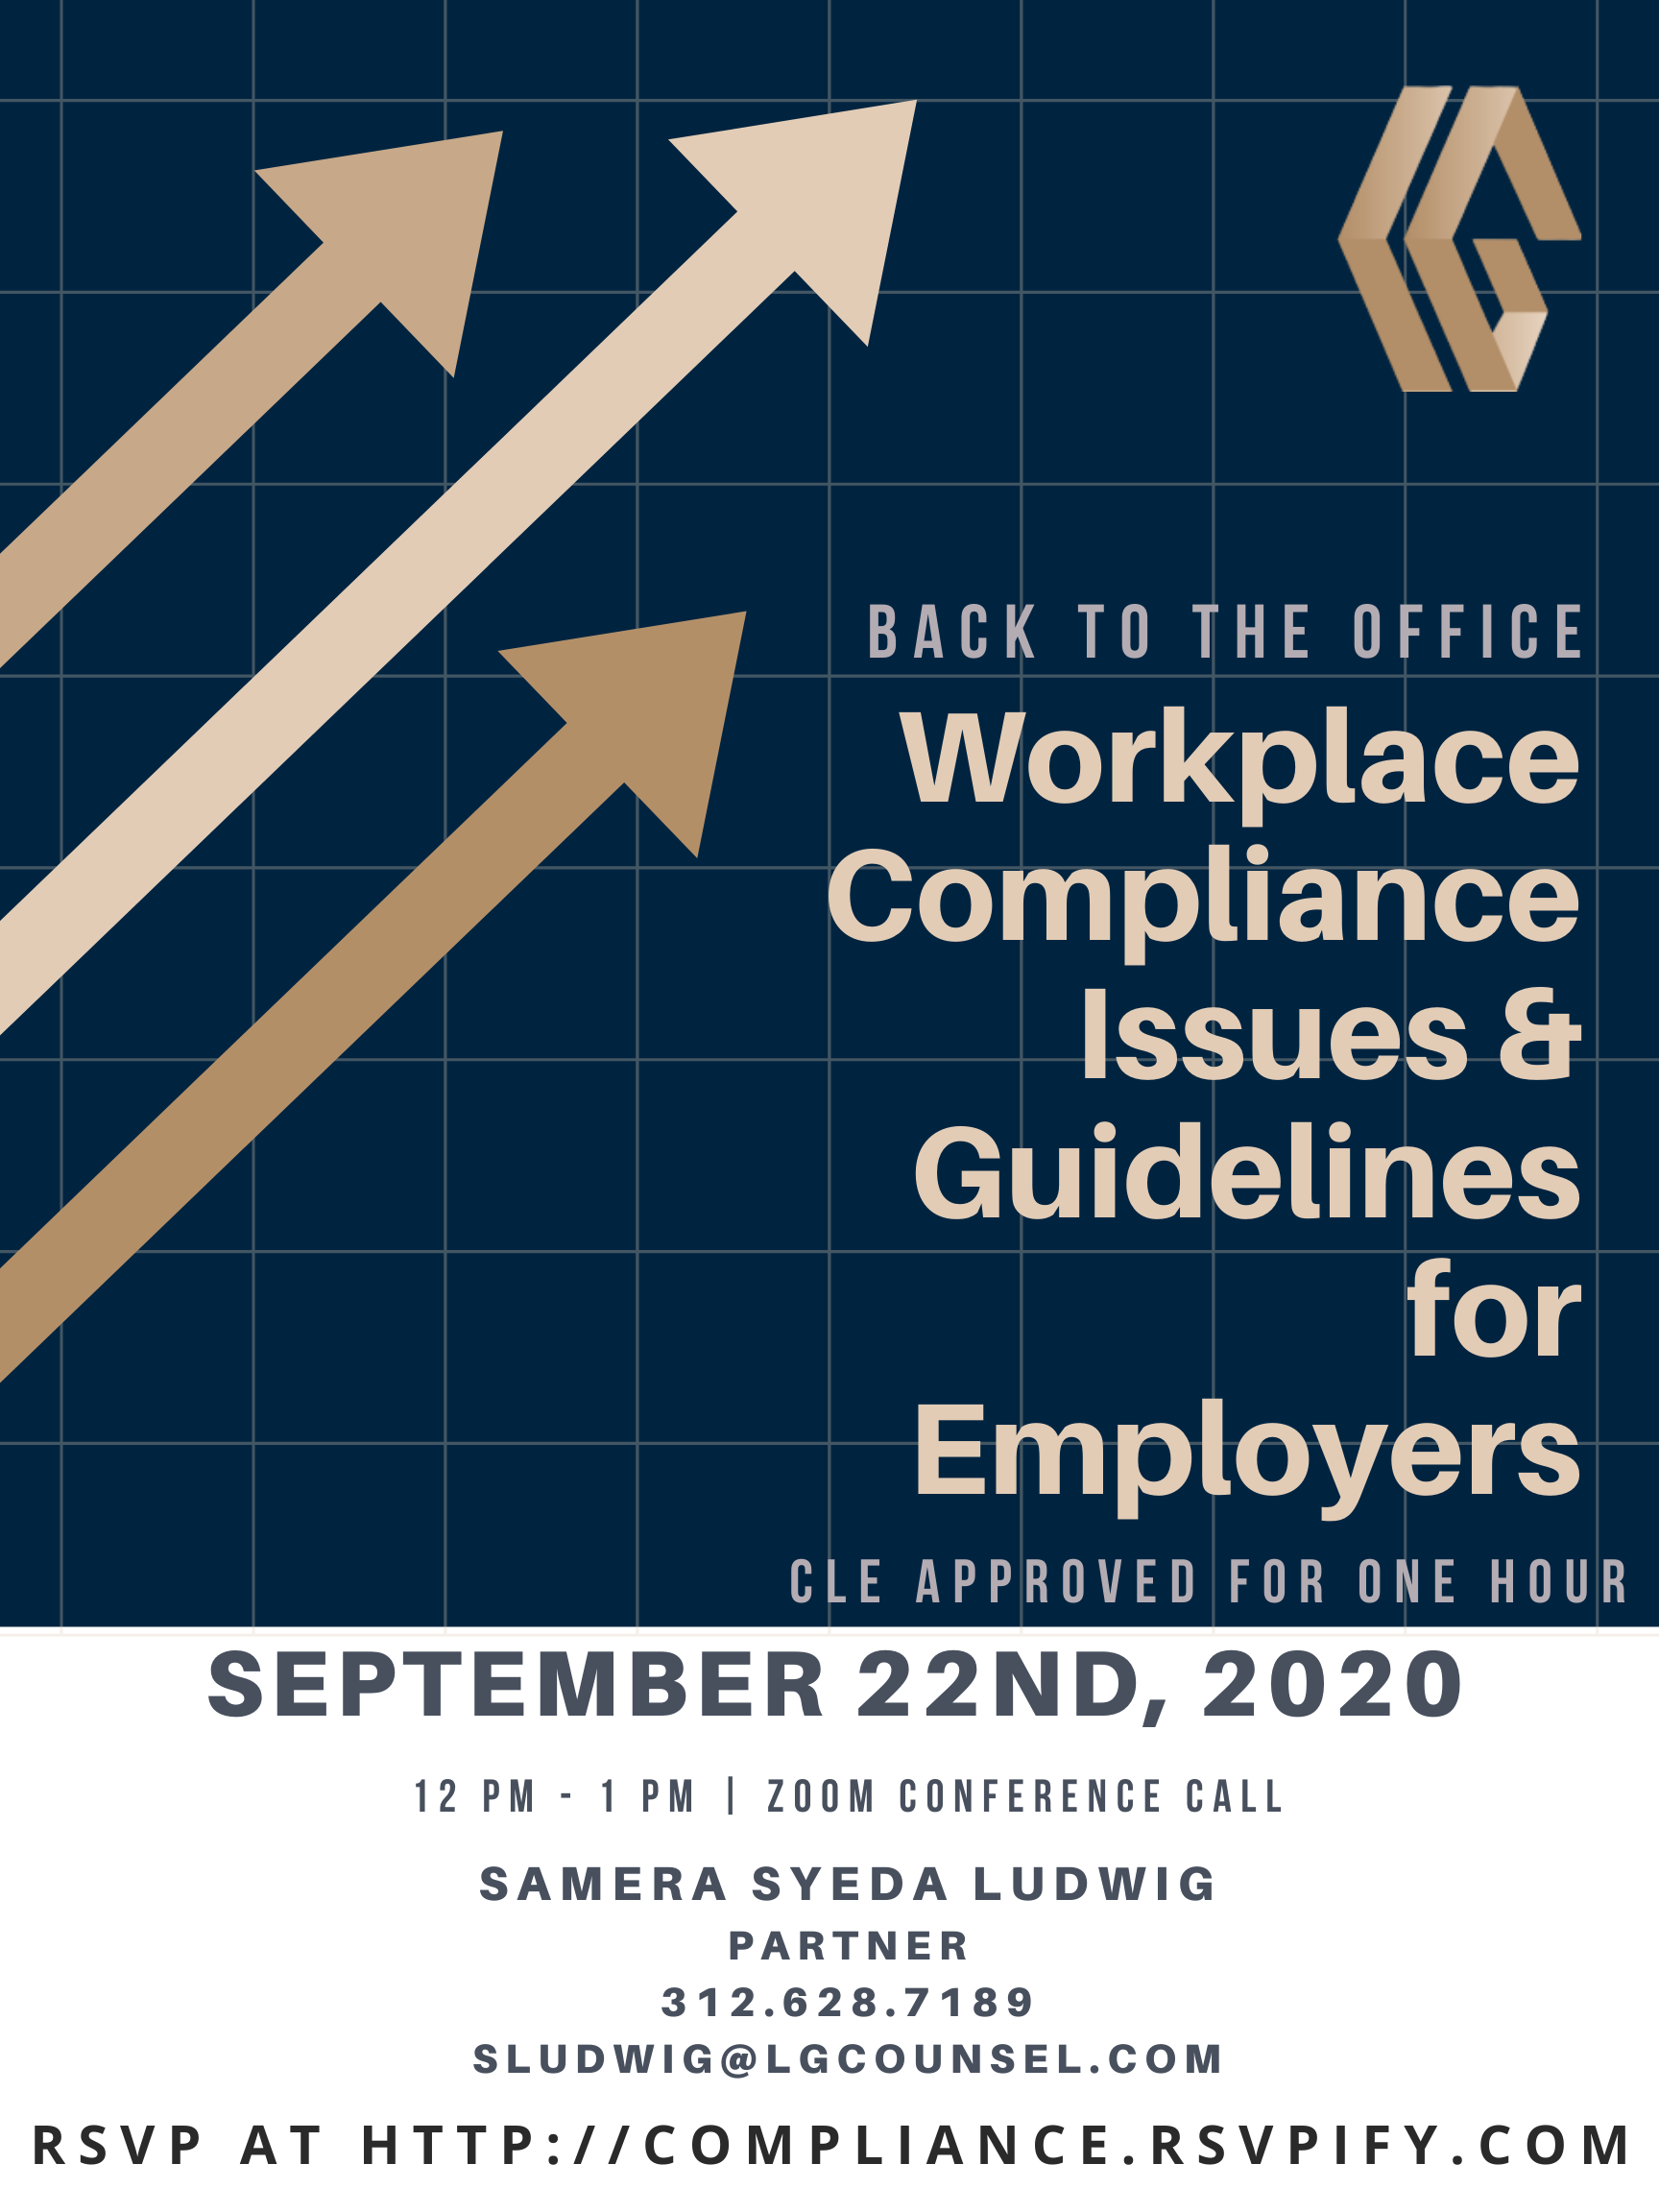 Workplace Compliance Issues & Guidelines for employers